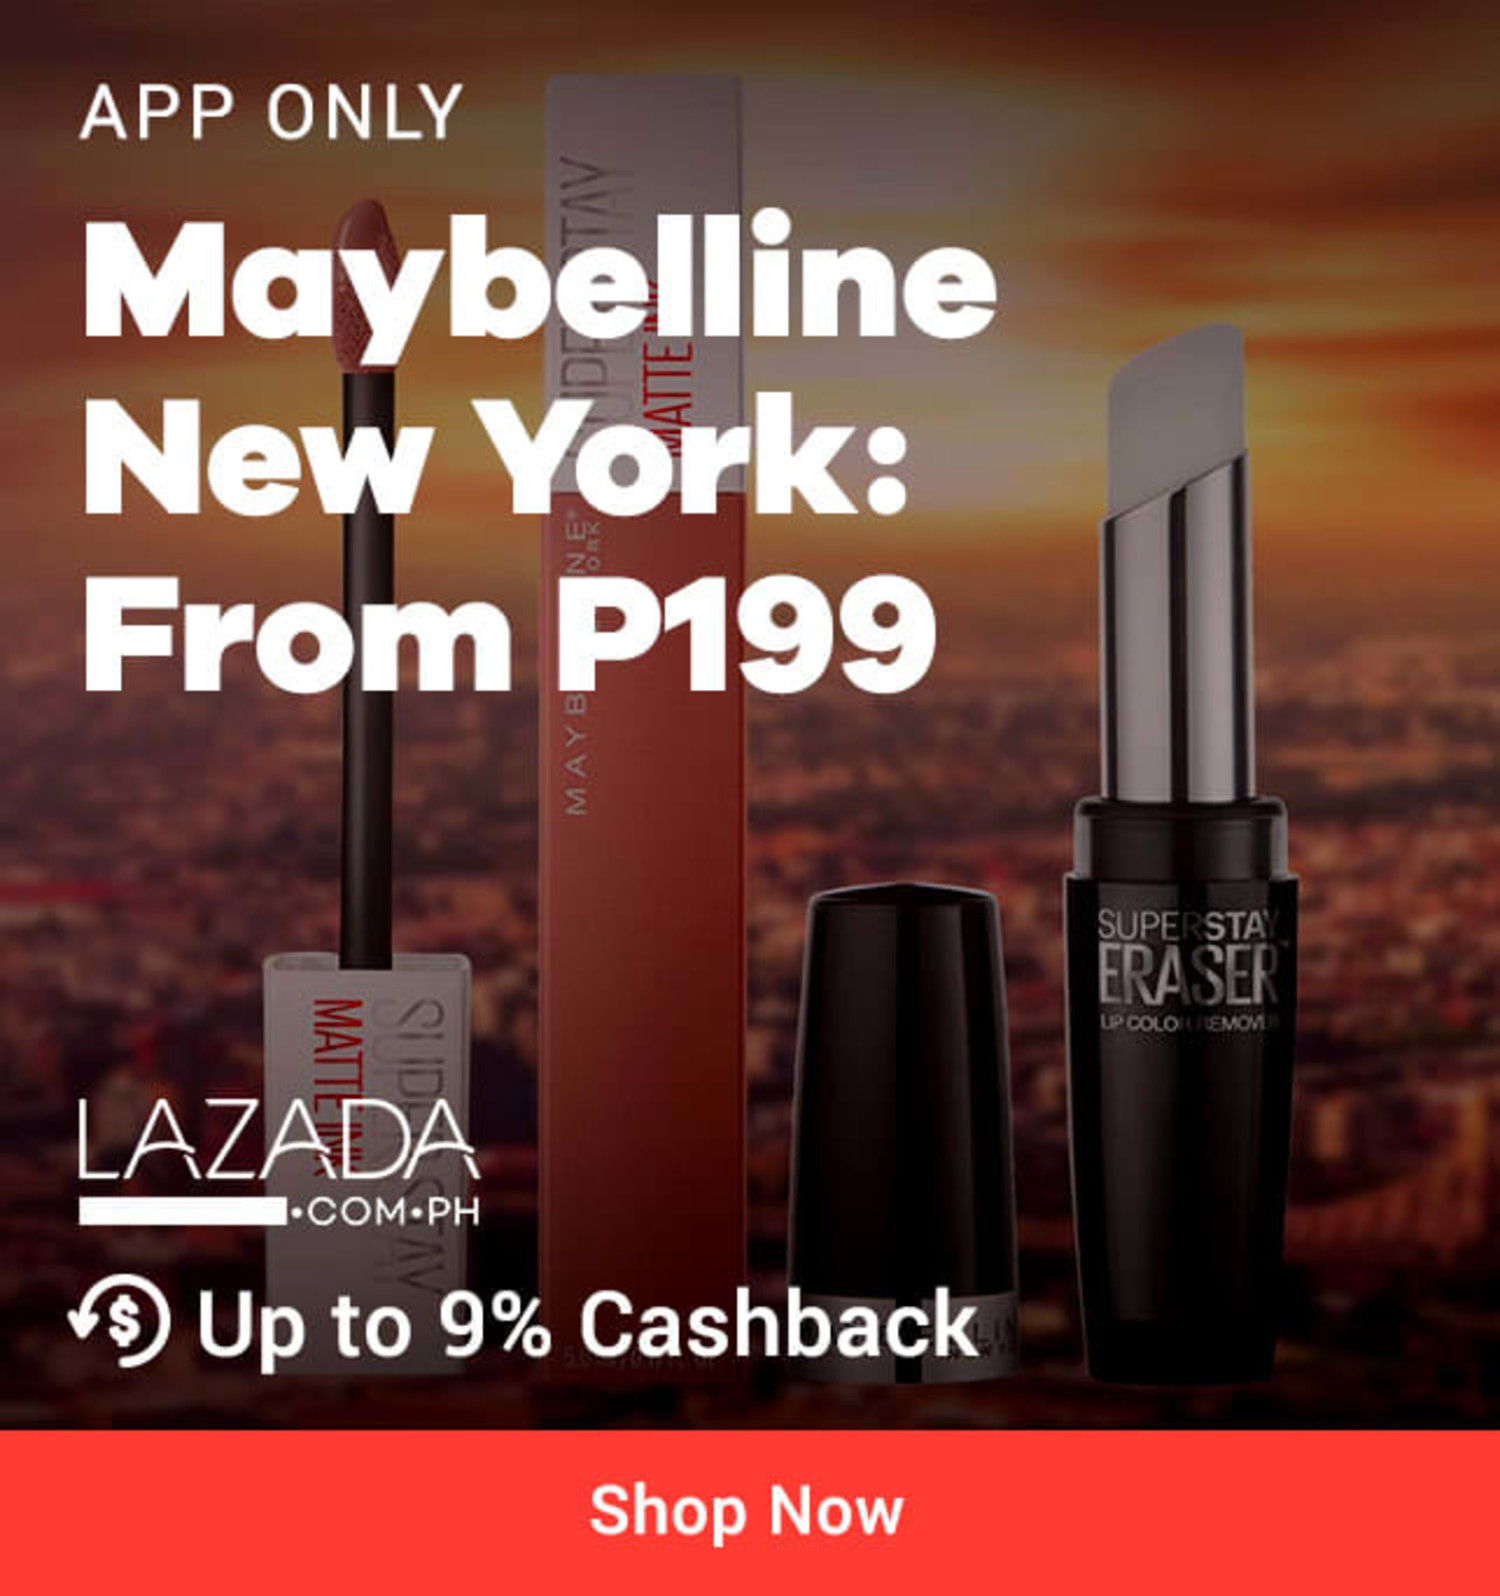 App only Lazada Maybelline New York: Long Lasting makeup from P199 + Up to 9% Cashback